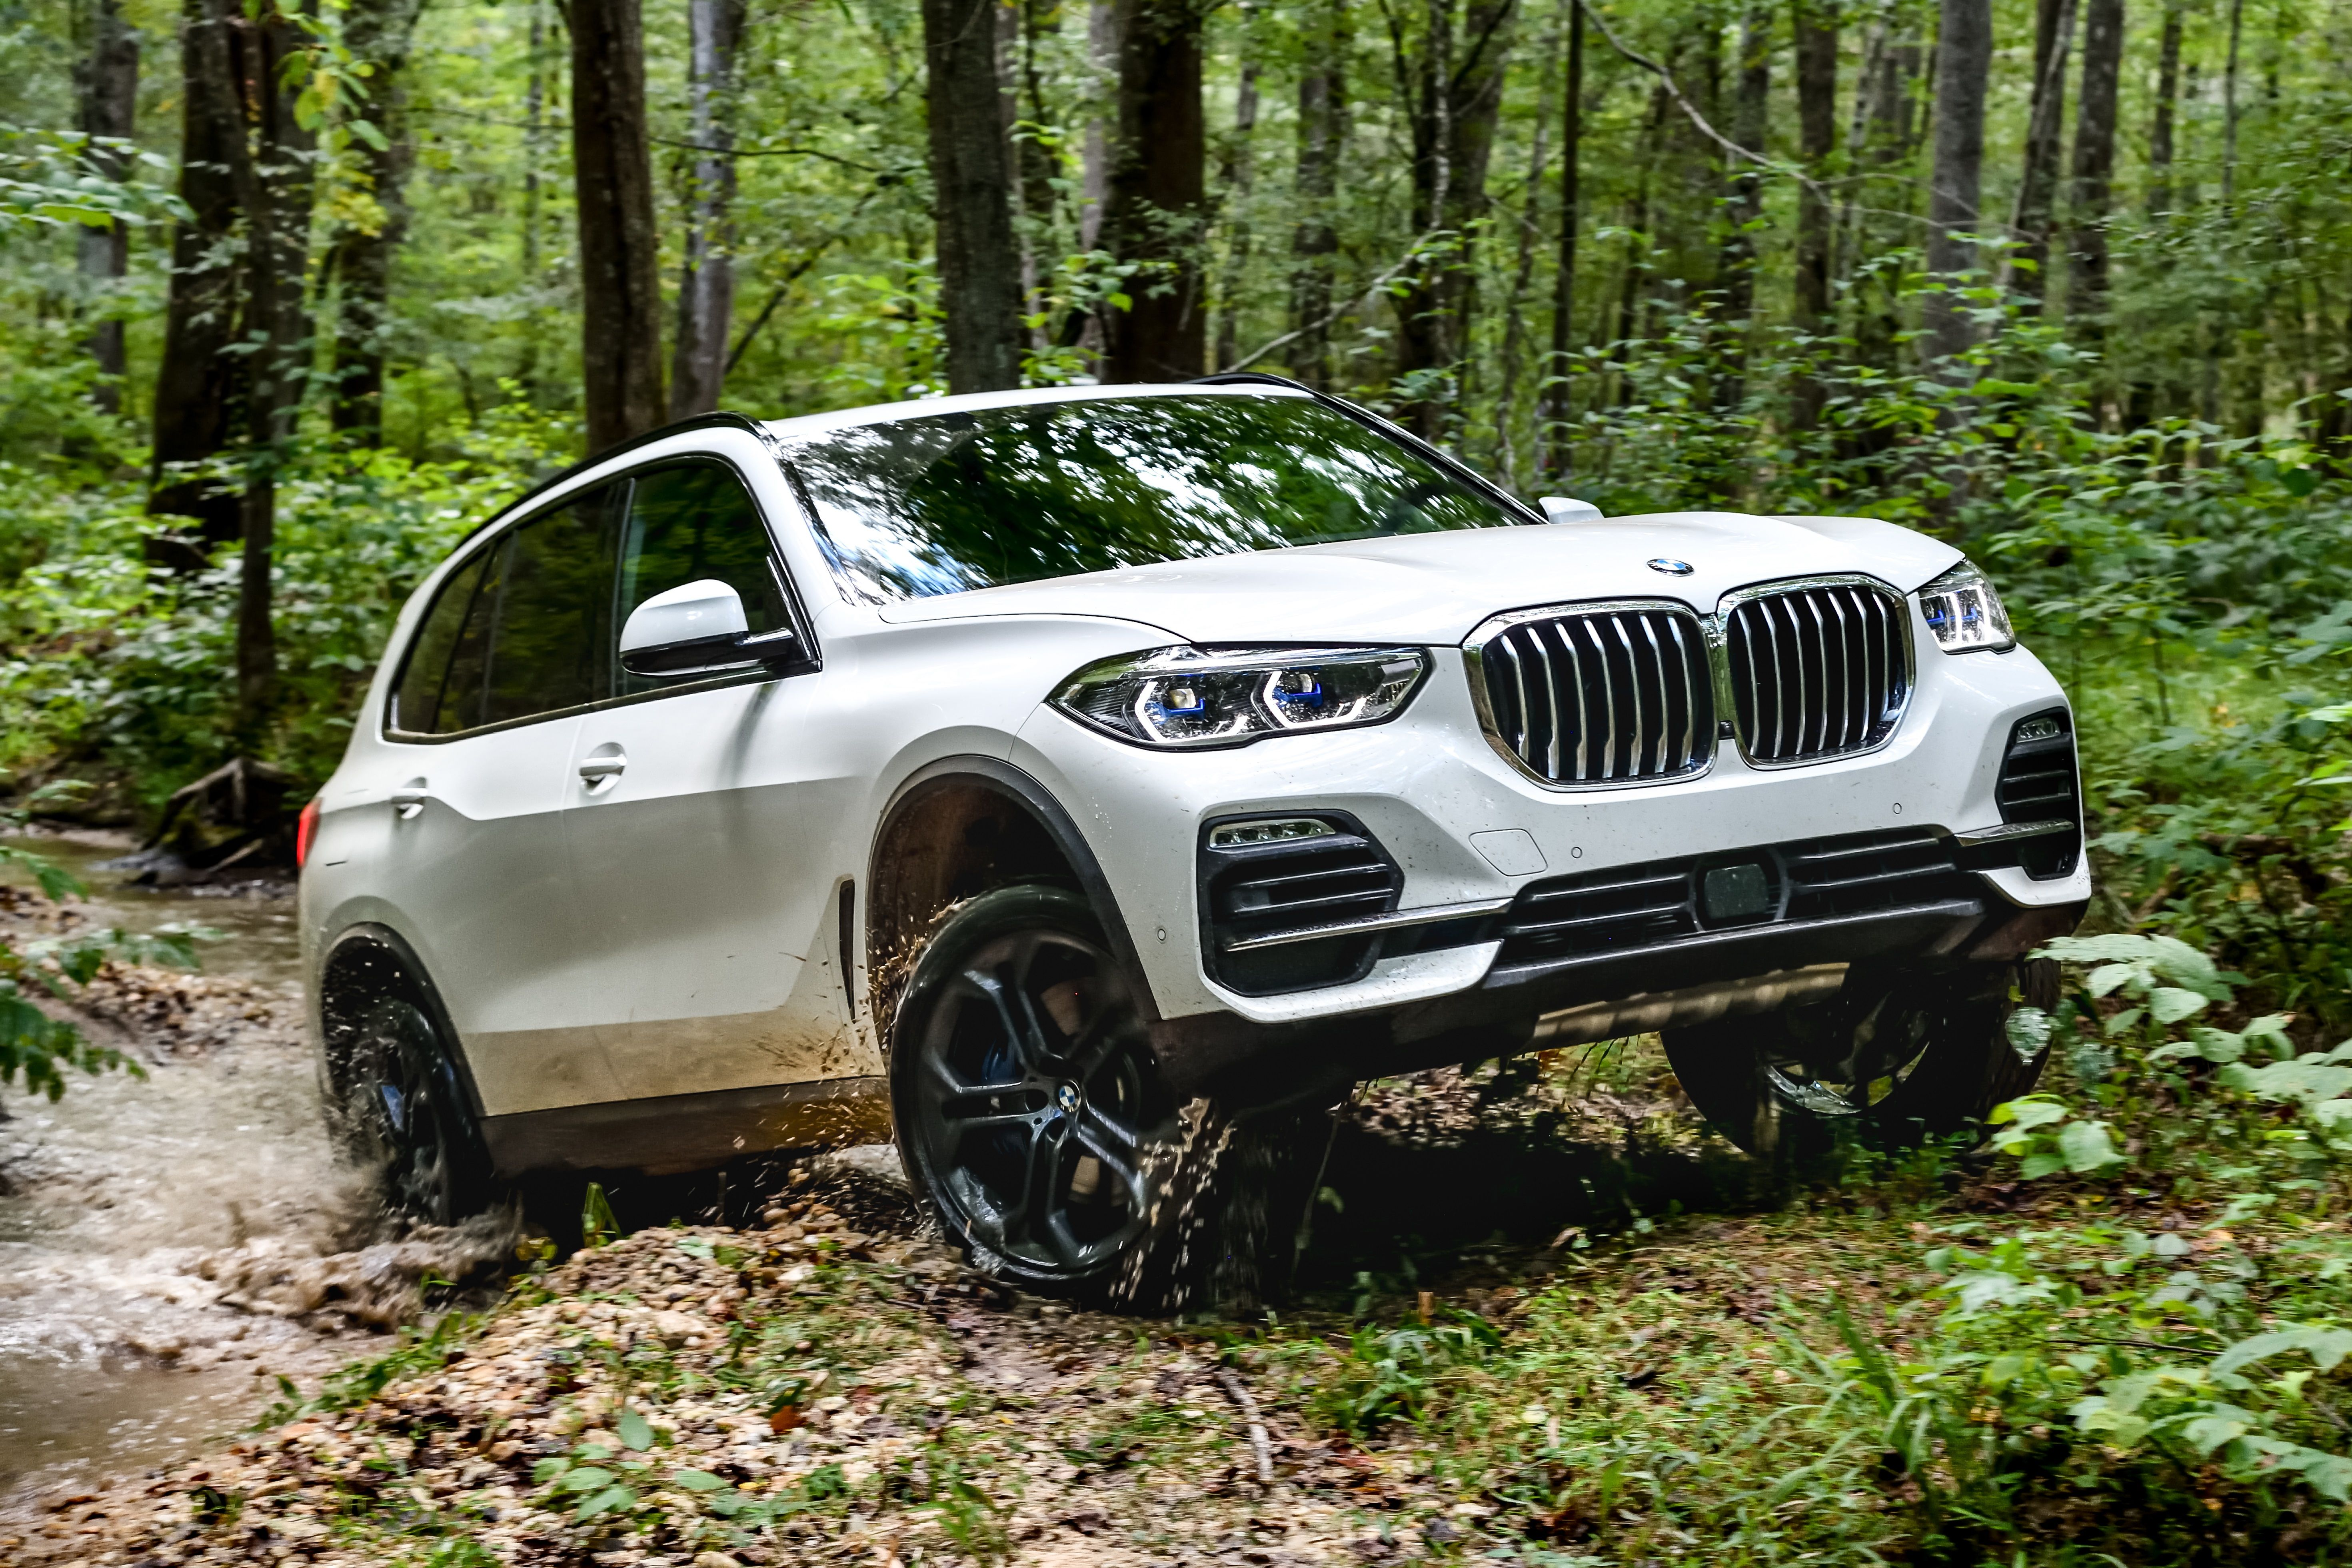 Bmw G05 X5 Xdrive40i Sav Mperformamce Mpackage Xline Sheerdrivingpleasure Badass Monster Muscle Outdoor Offroad Provocativeeyes Bmw X5 Suv Bmw